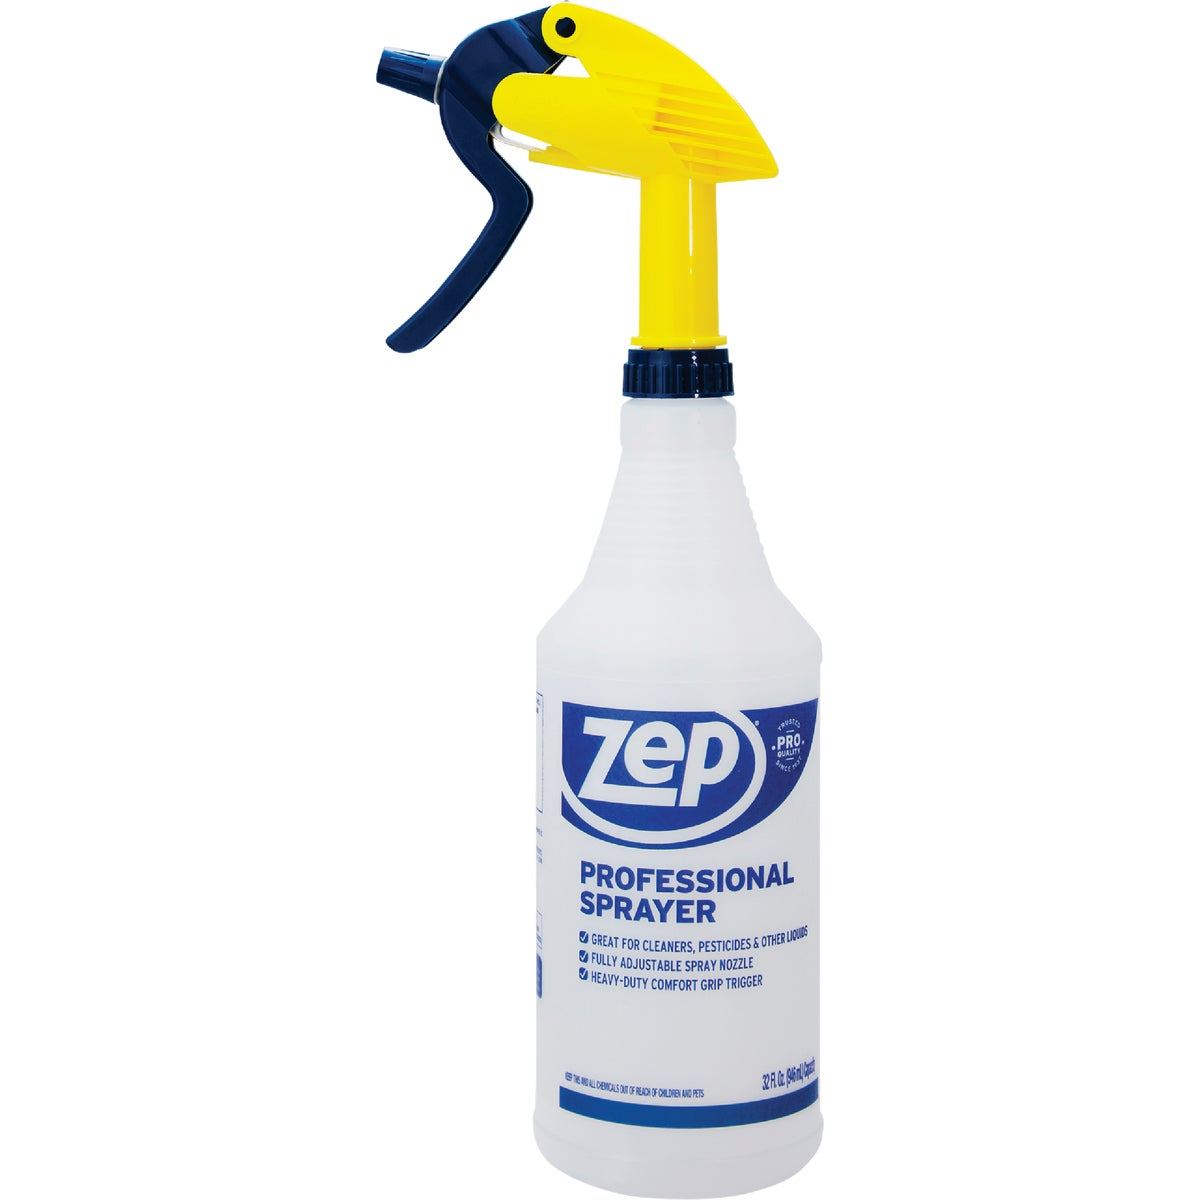 32OZ PRO SPRAY BOTTLE - HDPRO36 by Zep Enforcer Inc